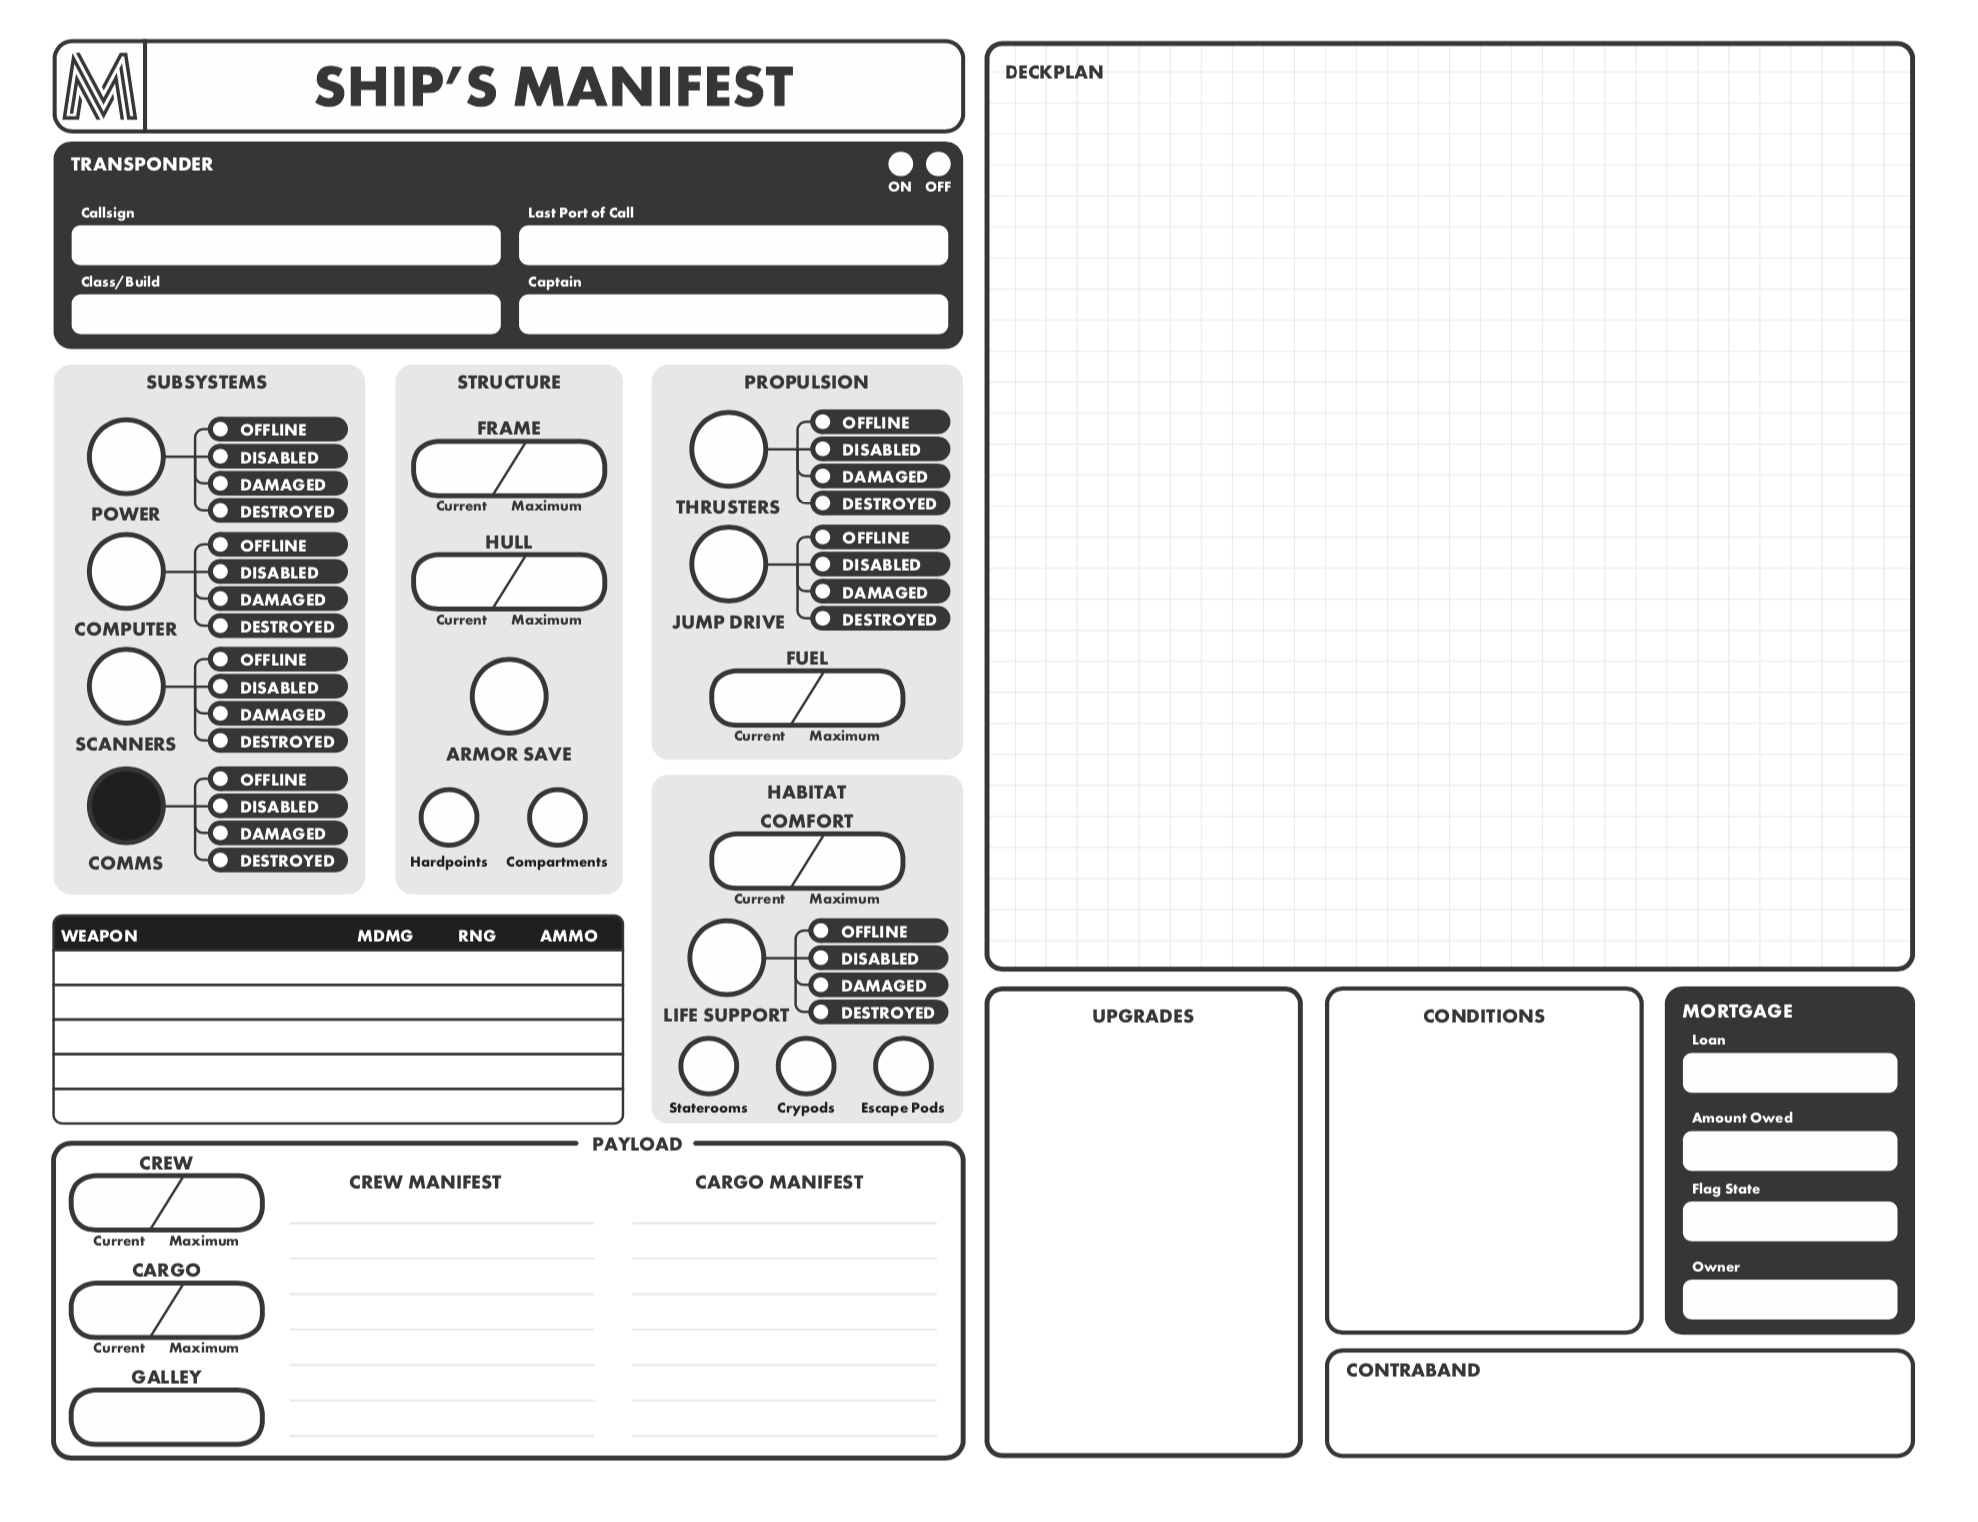 Work in progress. A brand new Ship Manifest. Coming soon in the Mothership Boxed Set